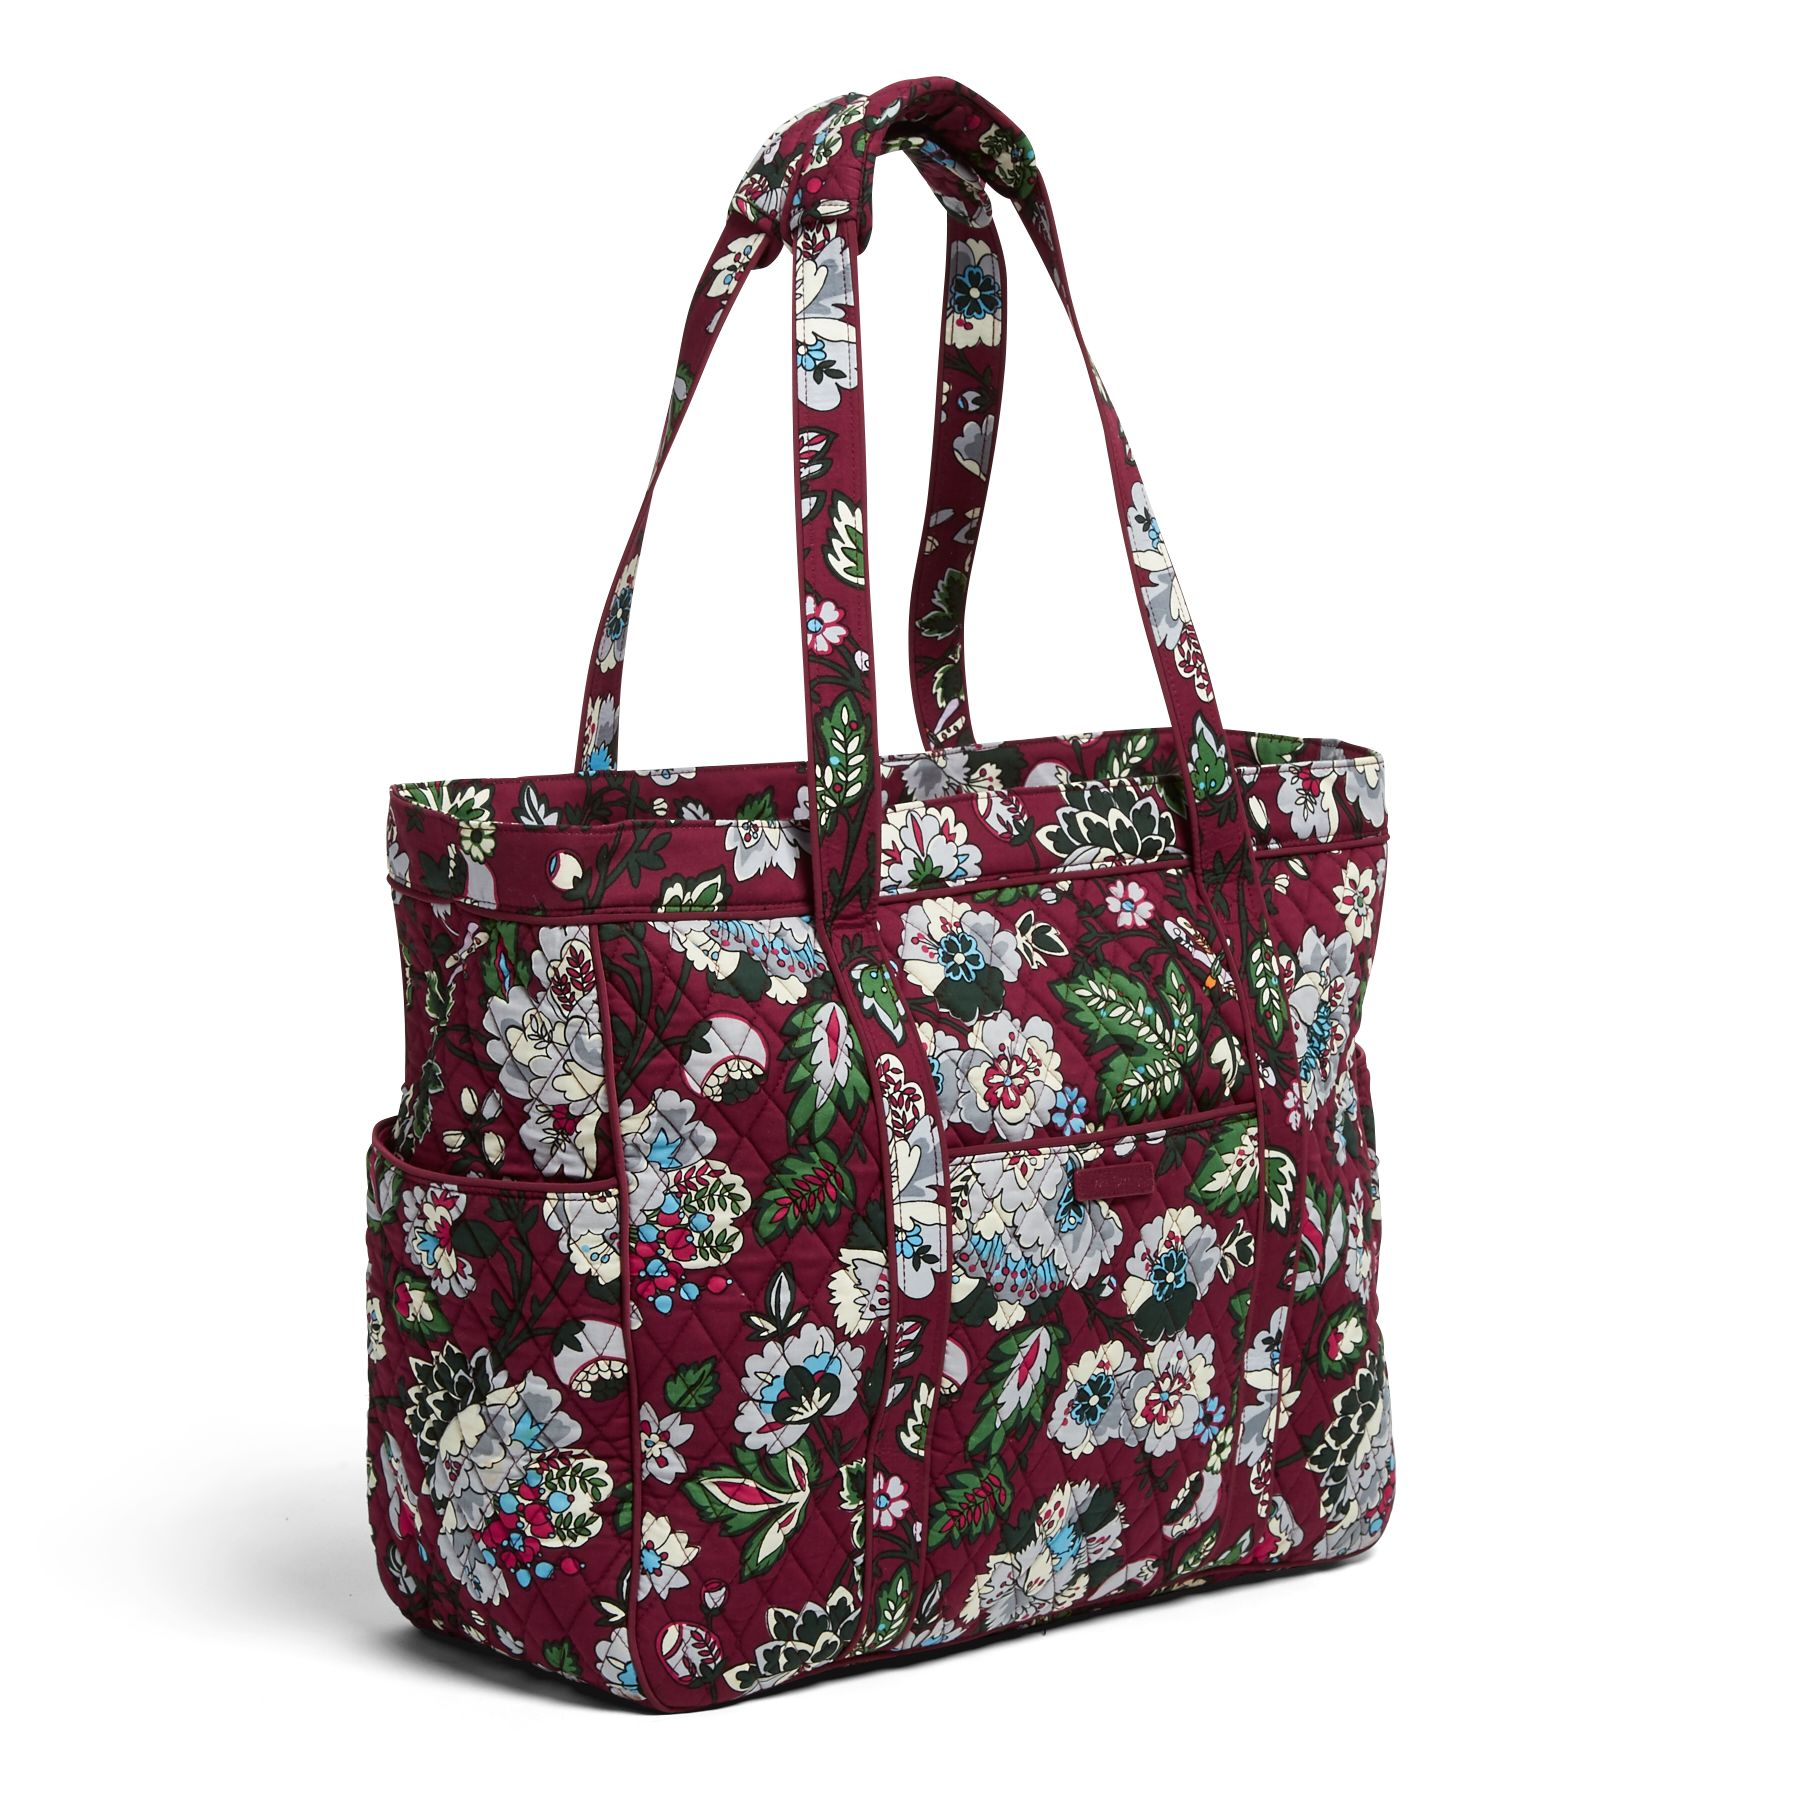 6ebcb23a1f59 Get Carried Away Tote